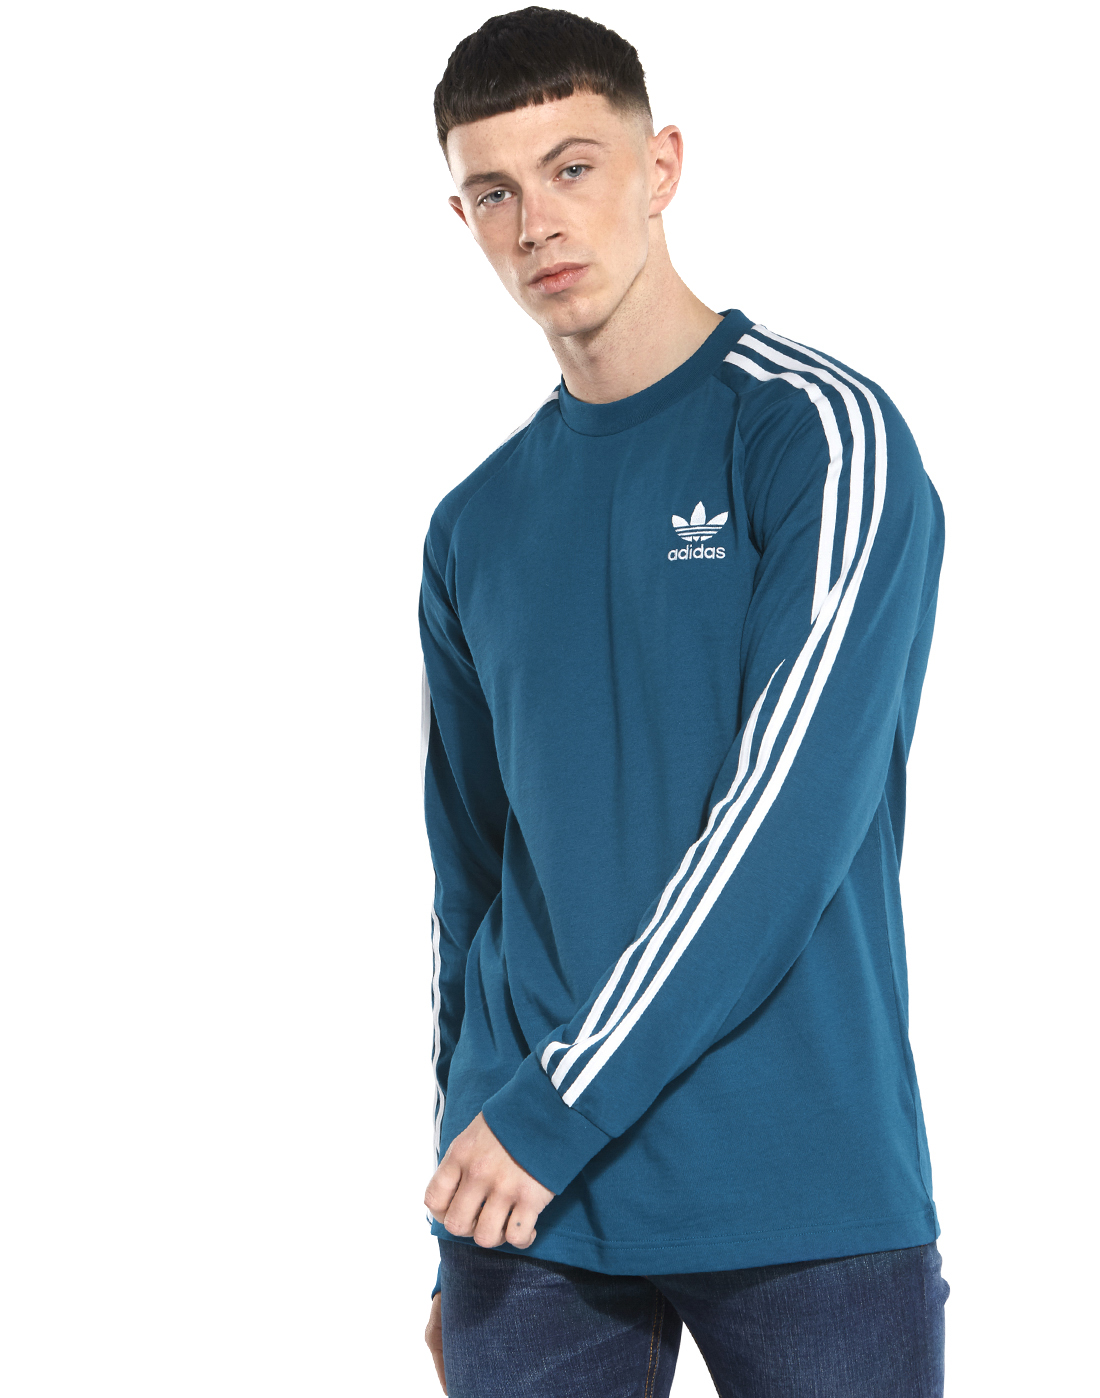 c46821068 Men's Navy Long Sleeve adidas Originals T-Shirt | Life Style Sports